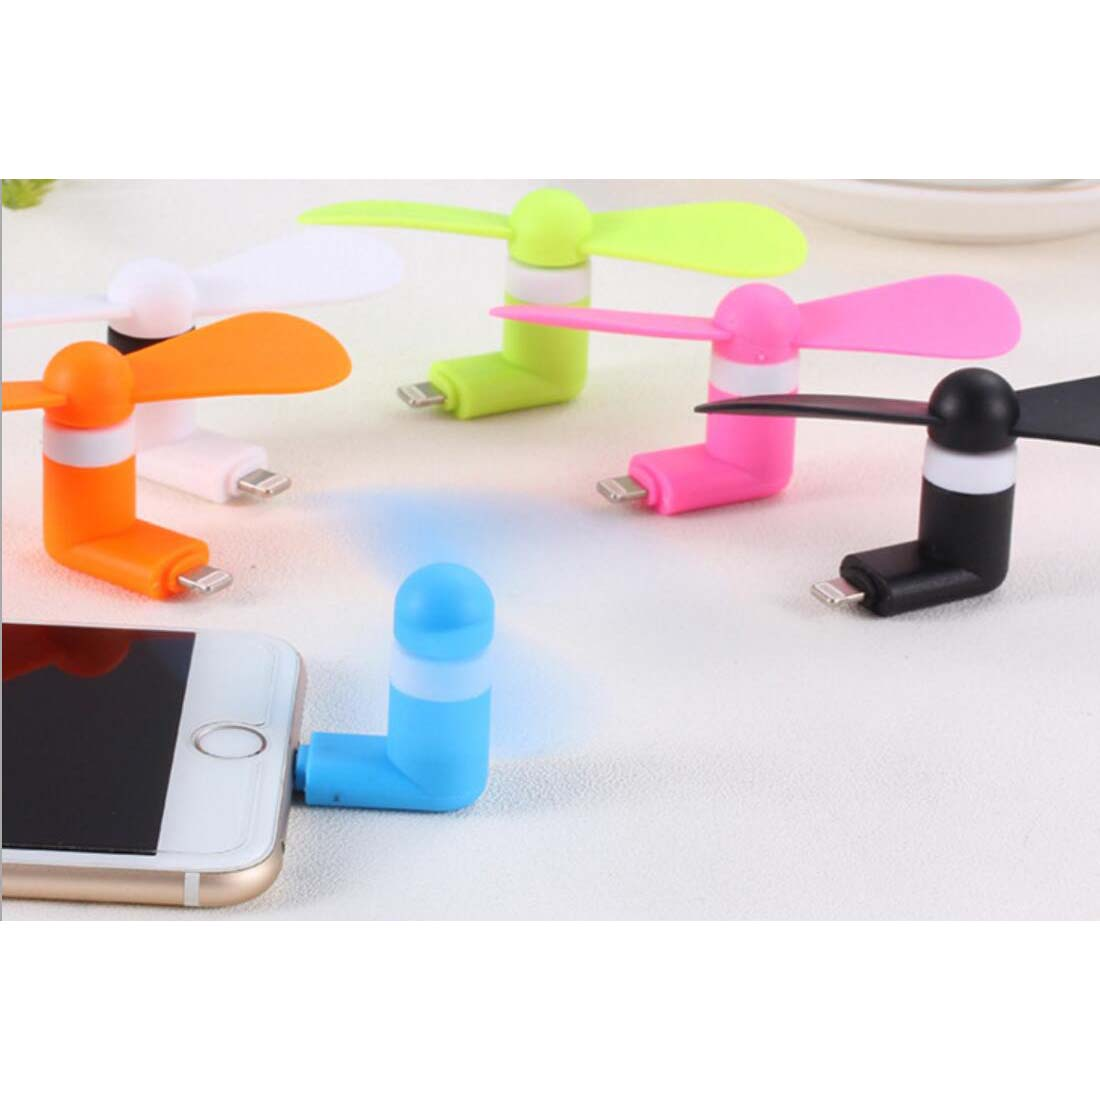 Mobile Phone mini fan for iphone